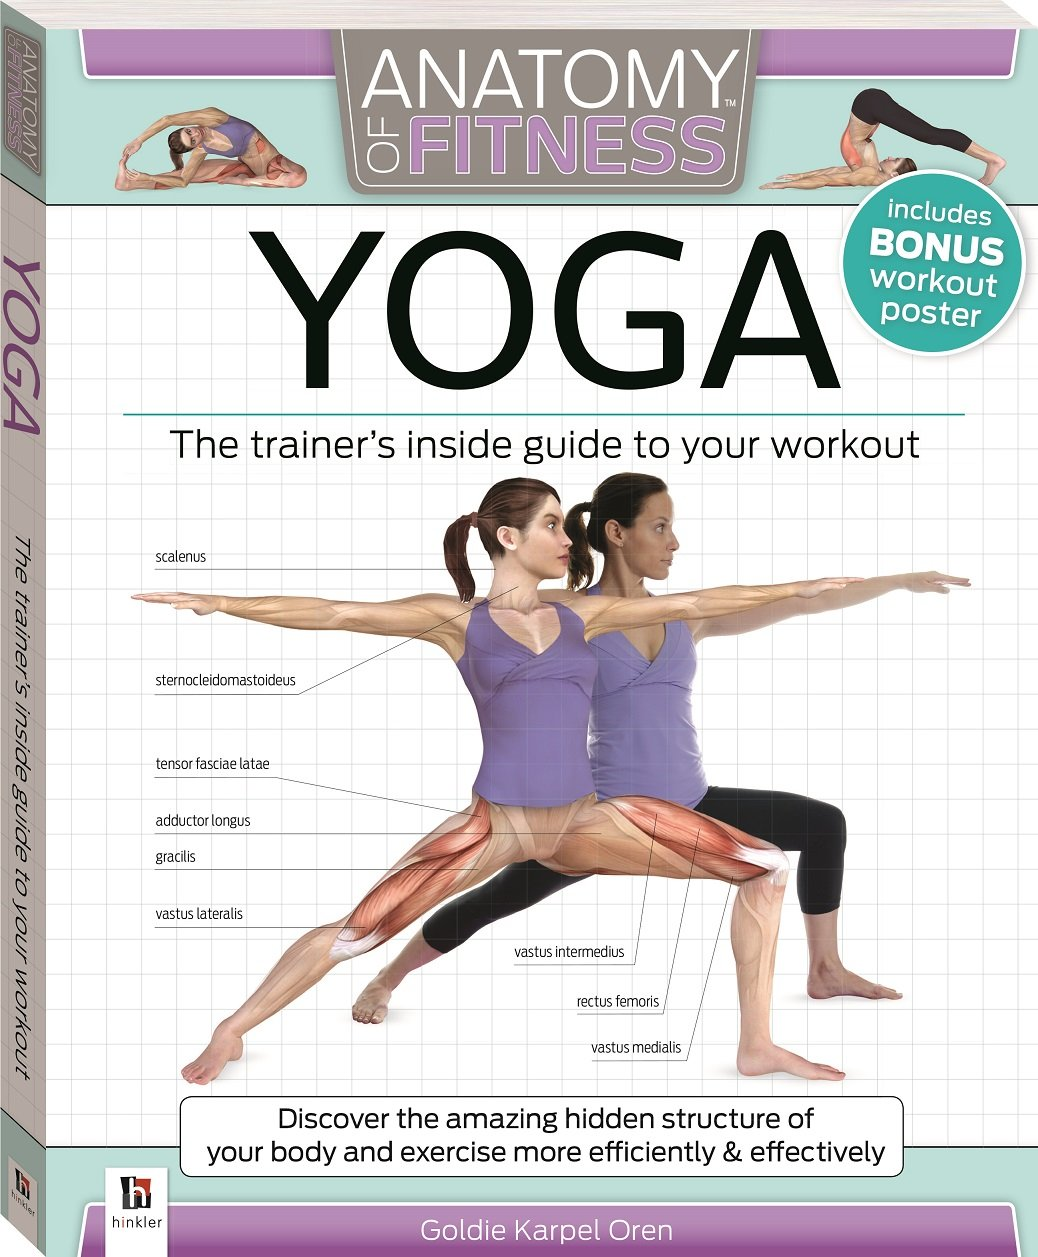 Anatomy of Fitness Yoga: Goldie Oren: 9781743080092: Amazon.com: Books